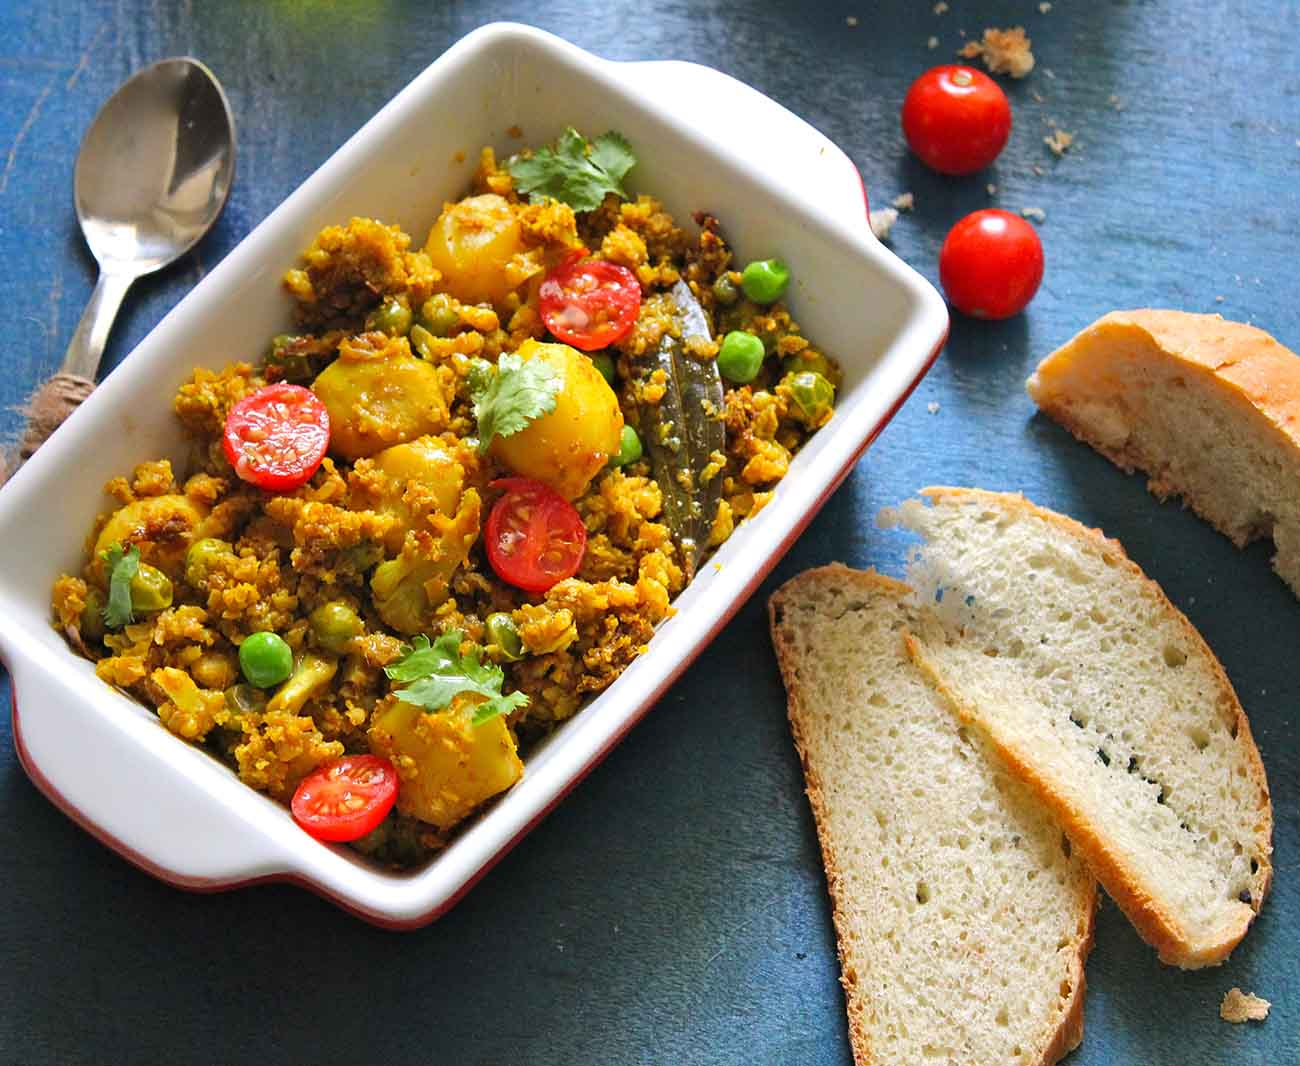 Gobi and soya keema recipe by archanas kitchen a brilliant combination of grated gobi and soya chunksgranules cooked in indian spices makes a perfect side dish with phulkas for a great weeknight meal forumfinder Choice Image